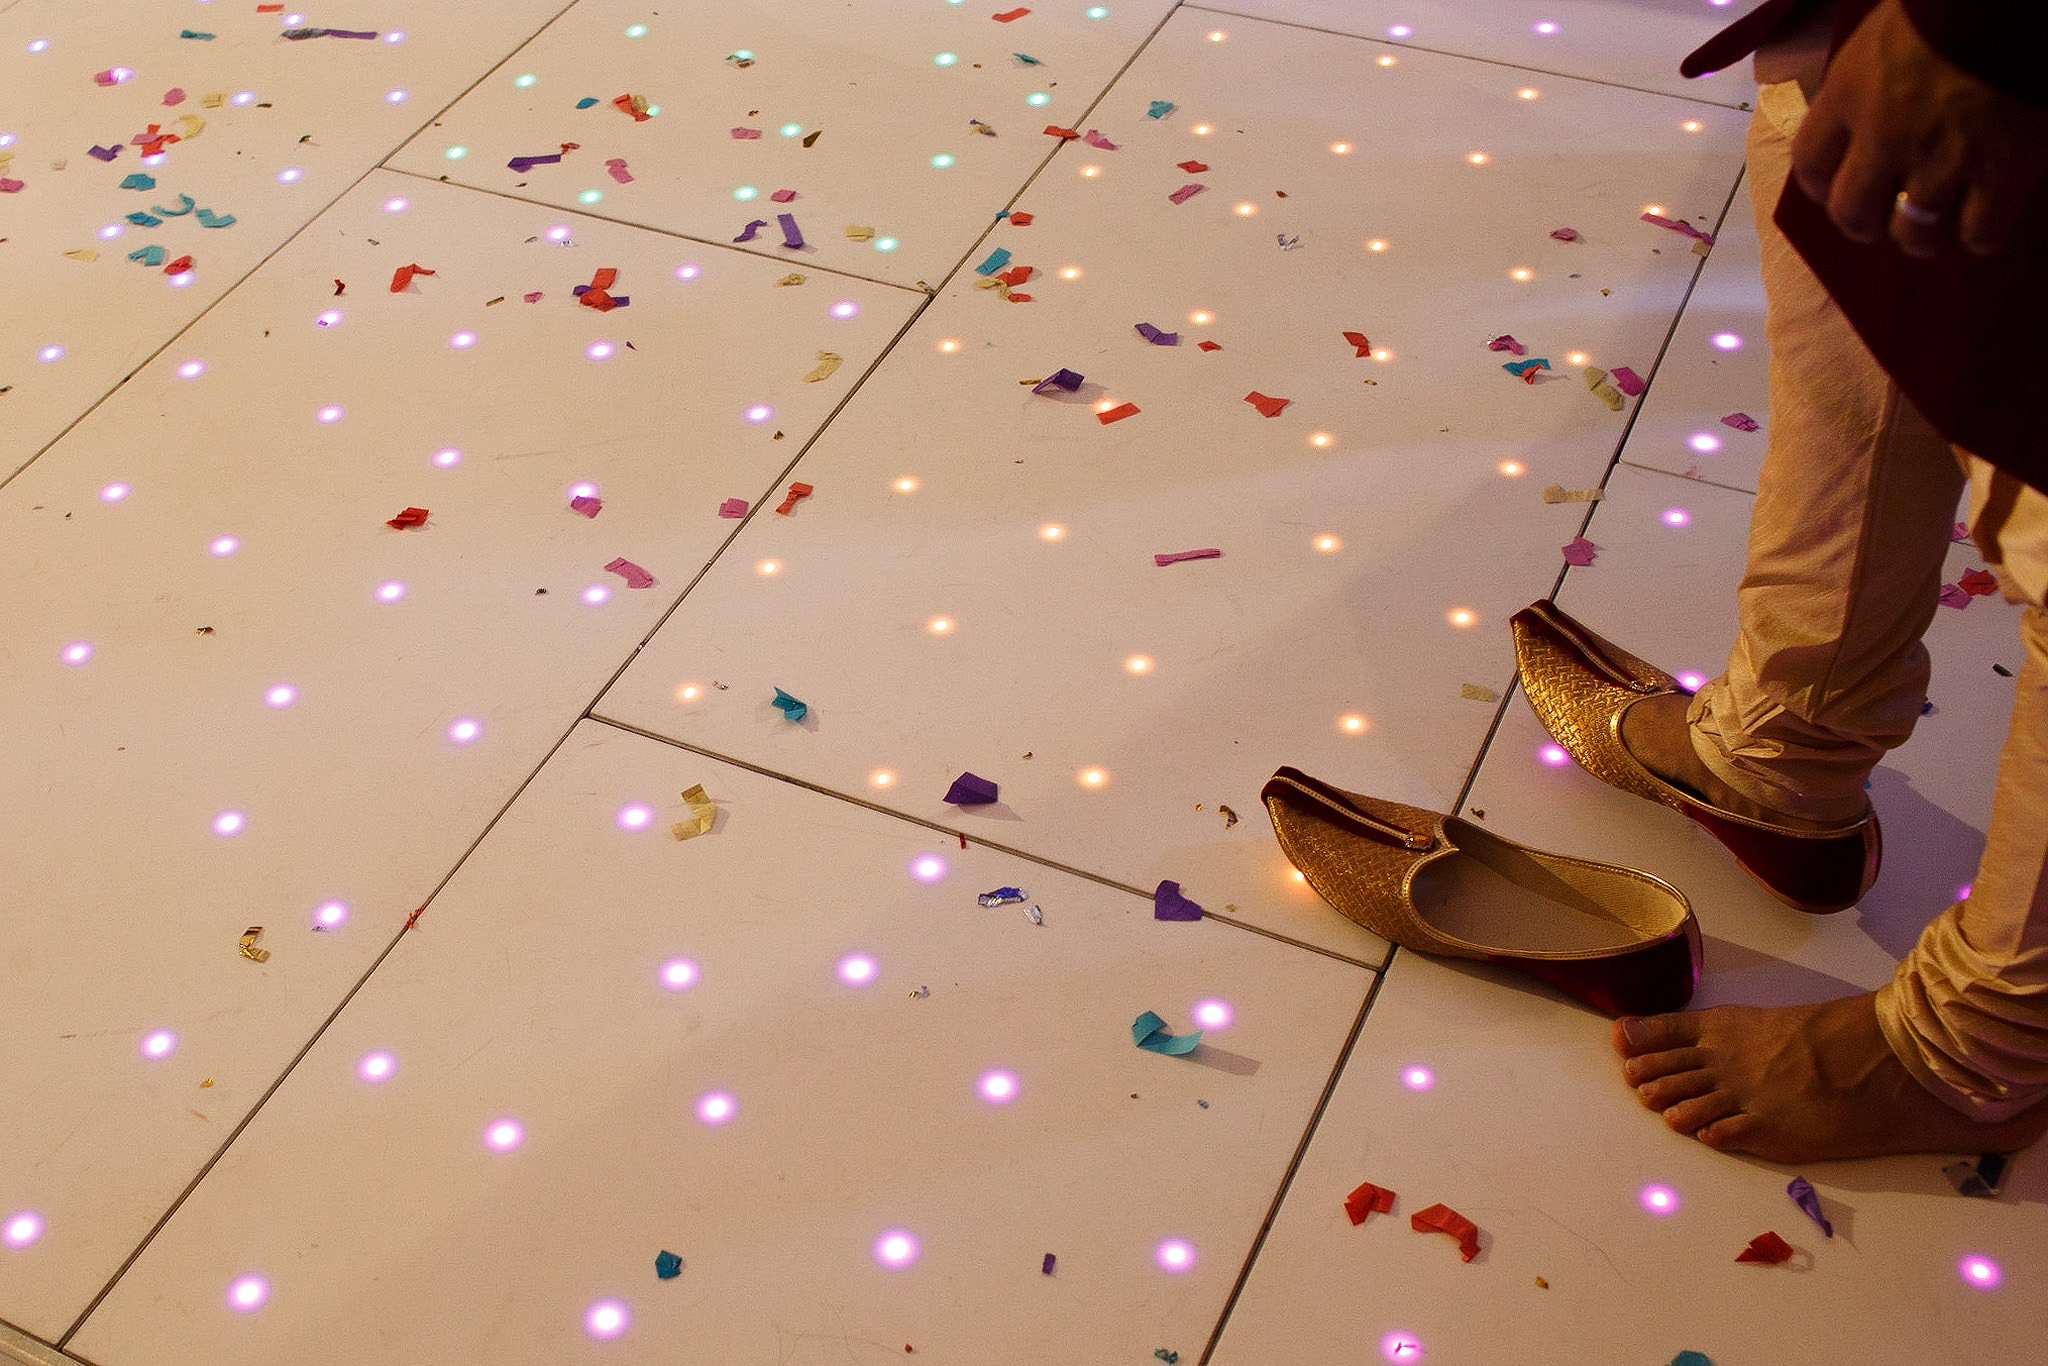 Indian groom removed shoes on the dance floor at wedding reception